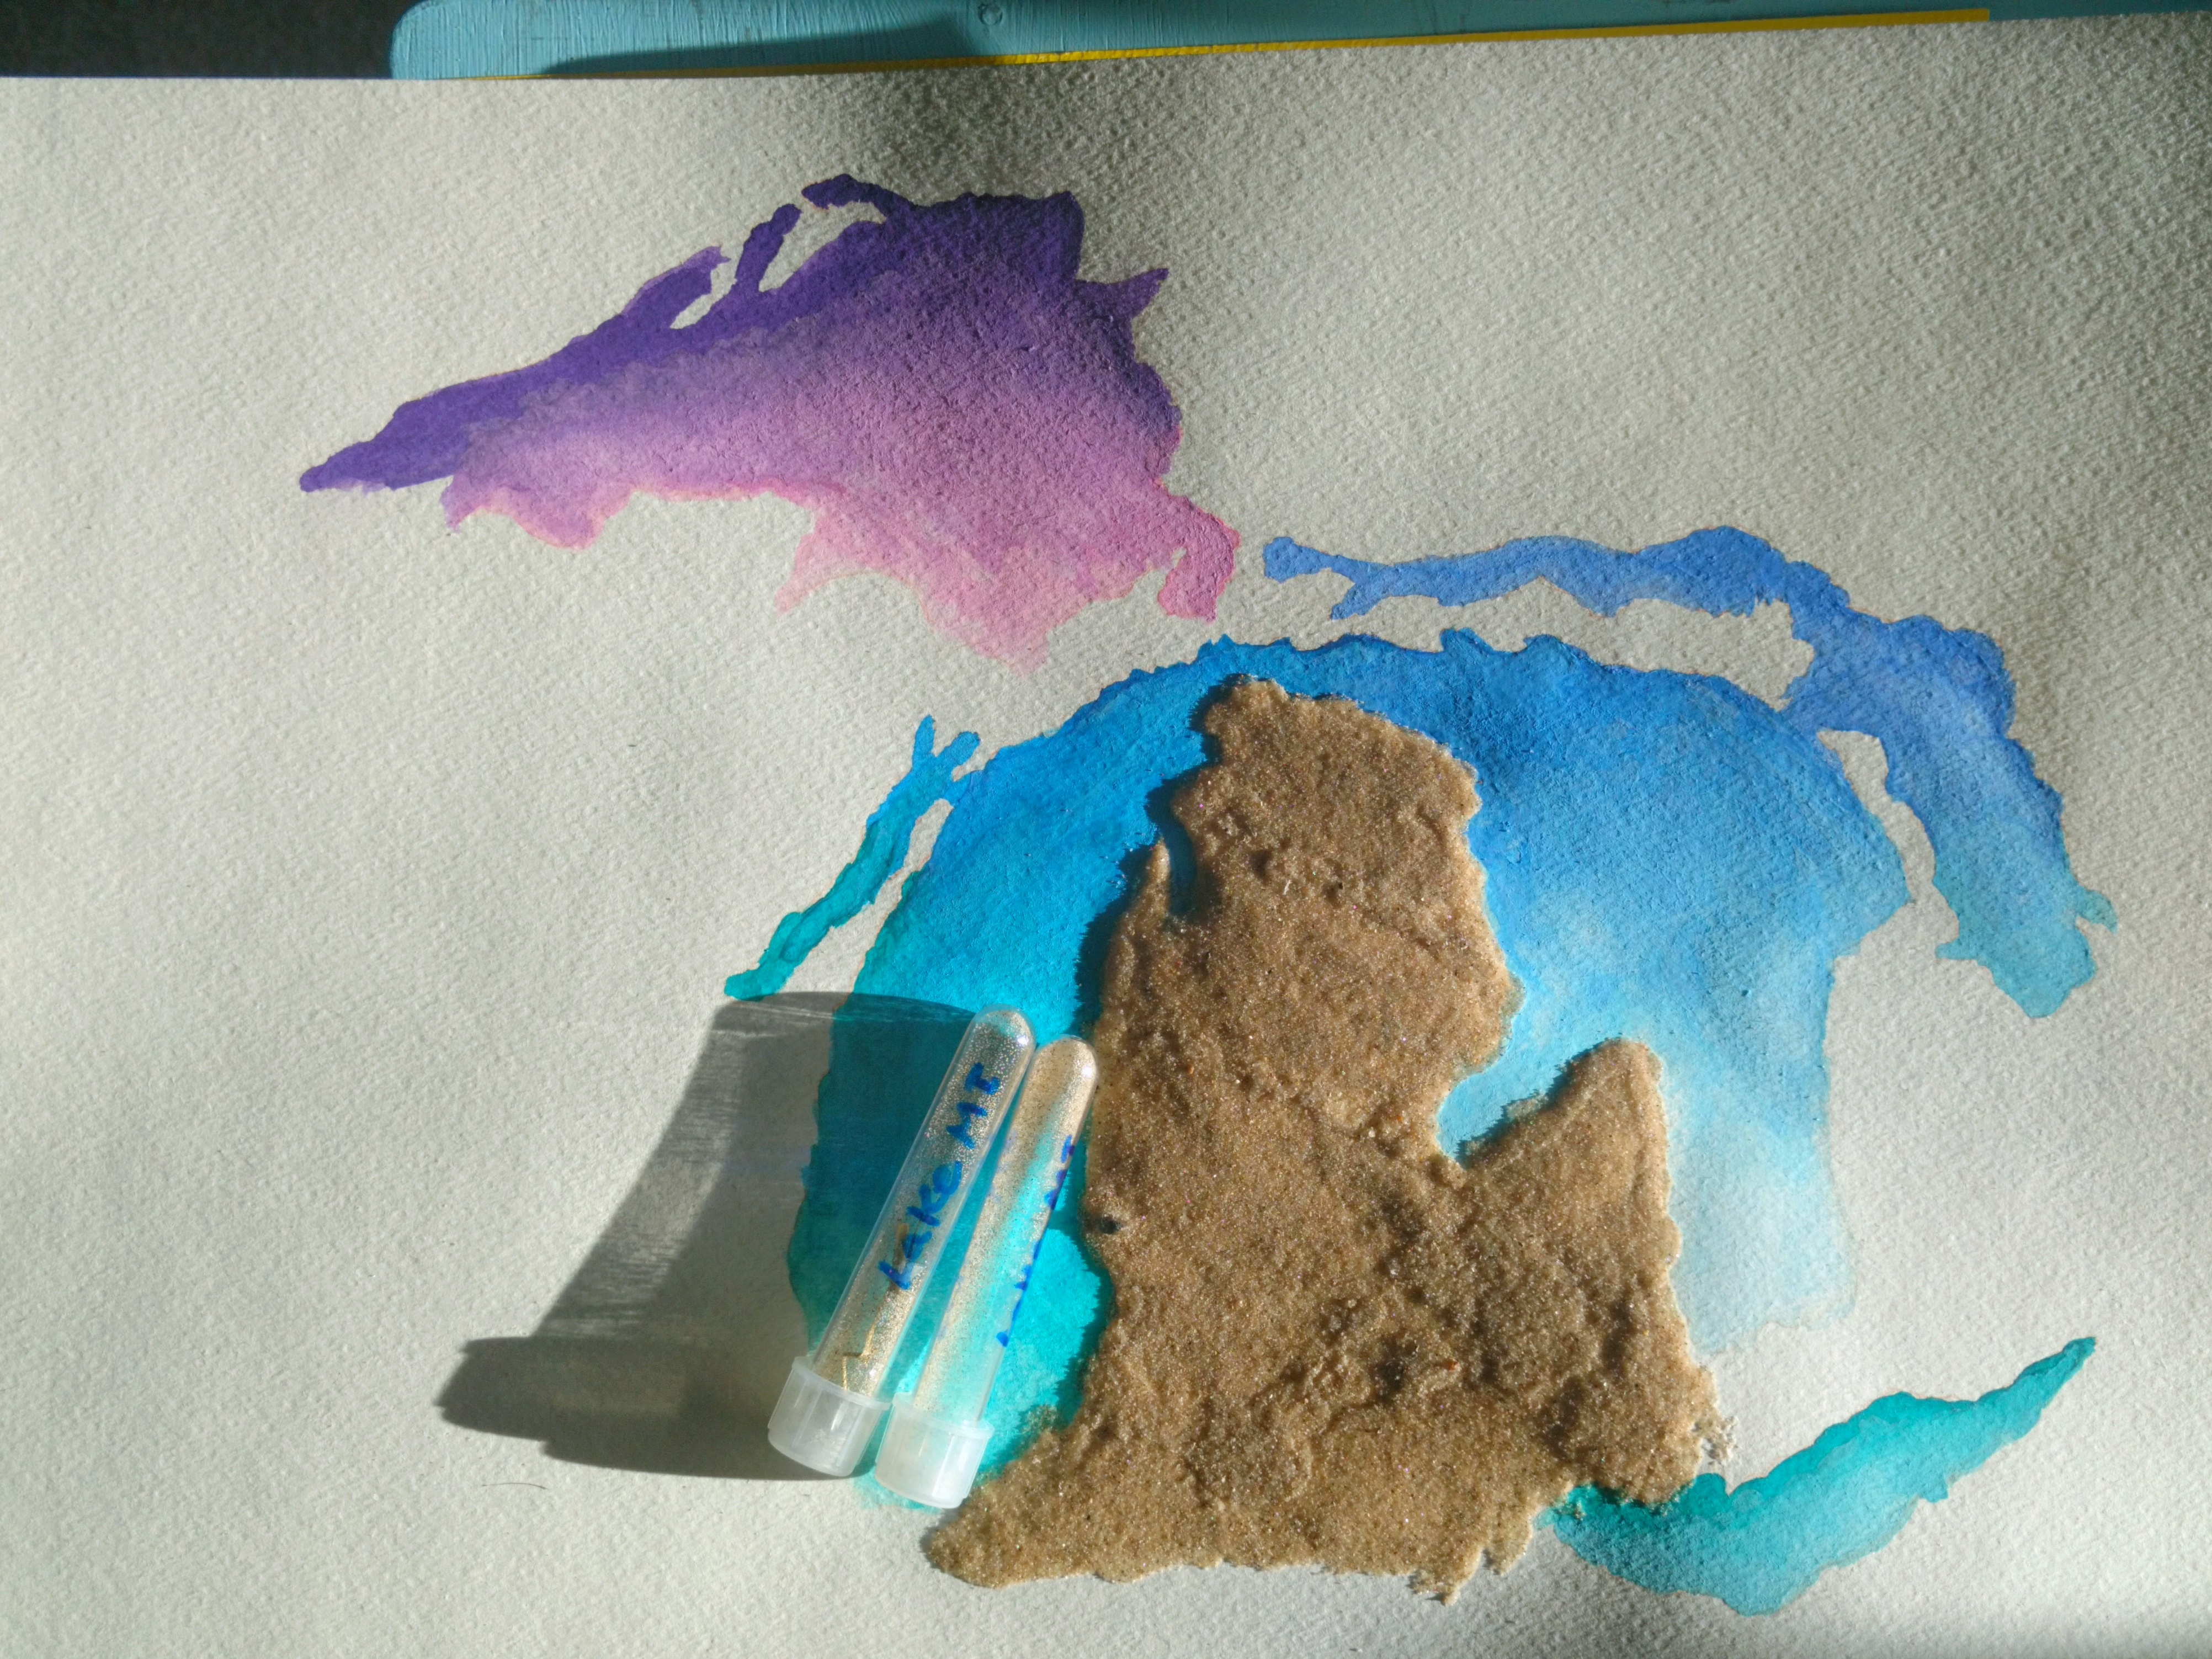 Watercolor of The Great Lakes and Michigan made of beach sand